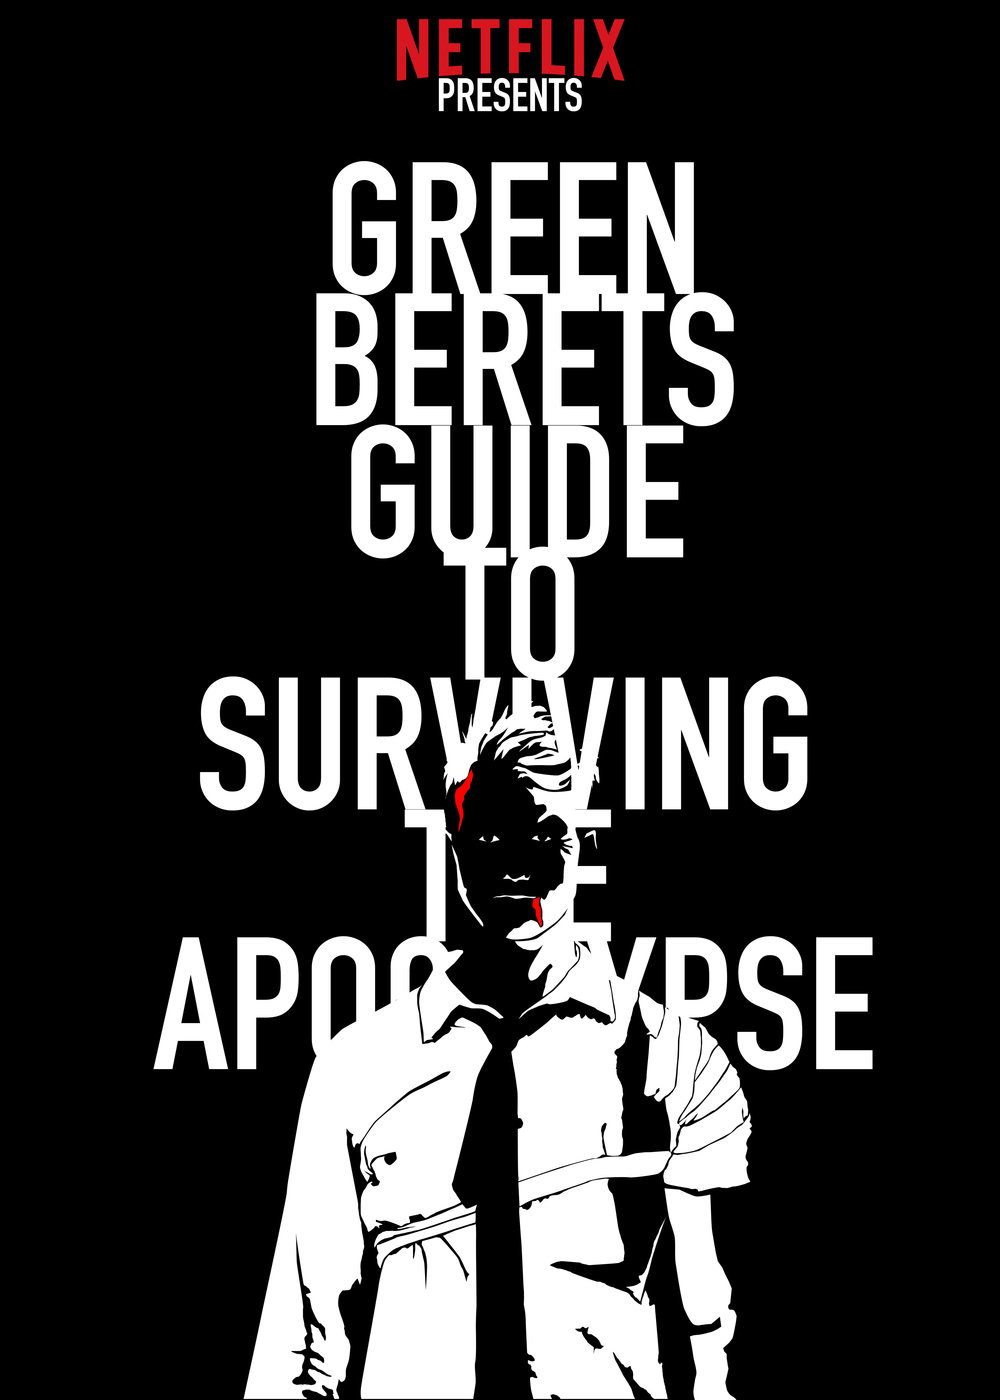 GREEN BERET'S GUIDE TO SURVIVING THE APOCALYPSE